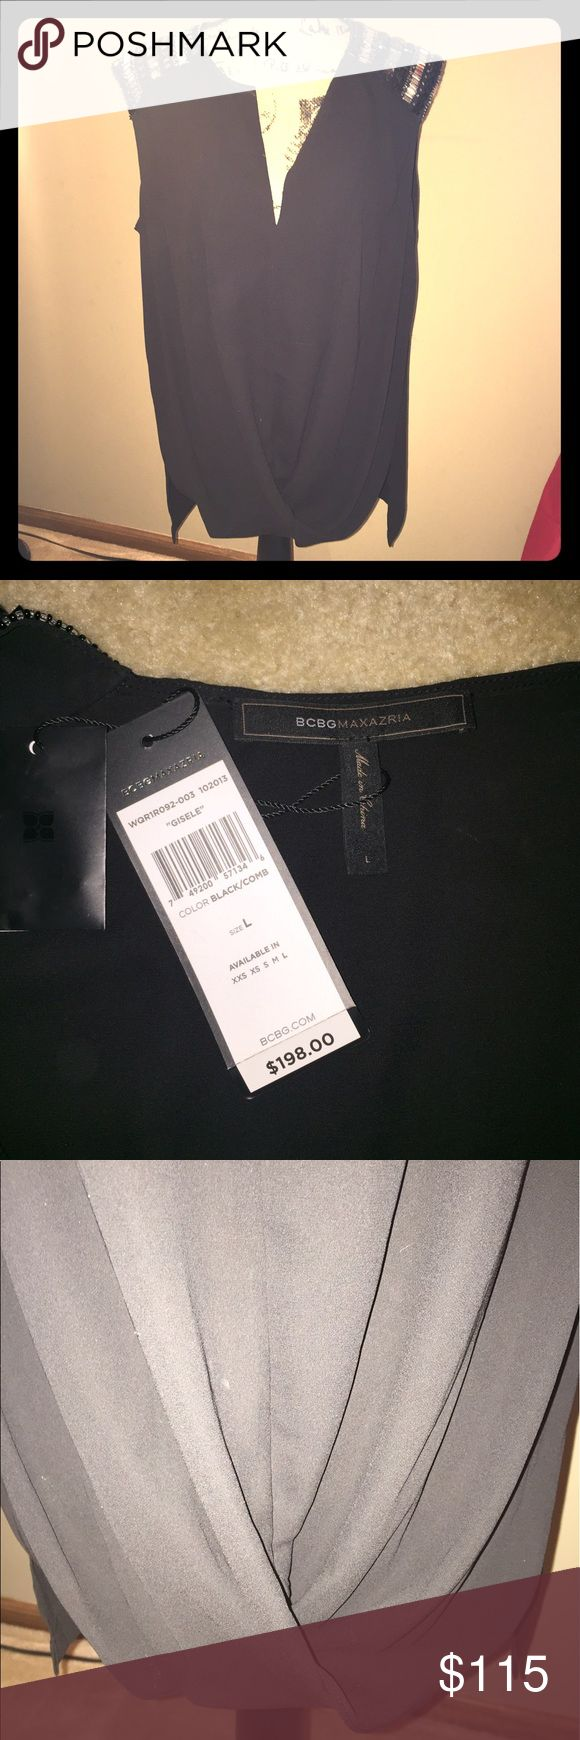 Stunning black Giselle BCBG top! NWT Elegant black top with gem details on the shoulders. Brand new with Tags! BCBGMaxAzria Tops Blouses